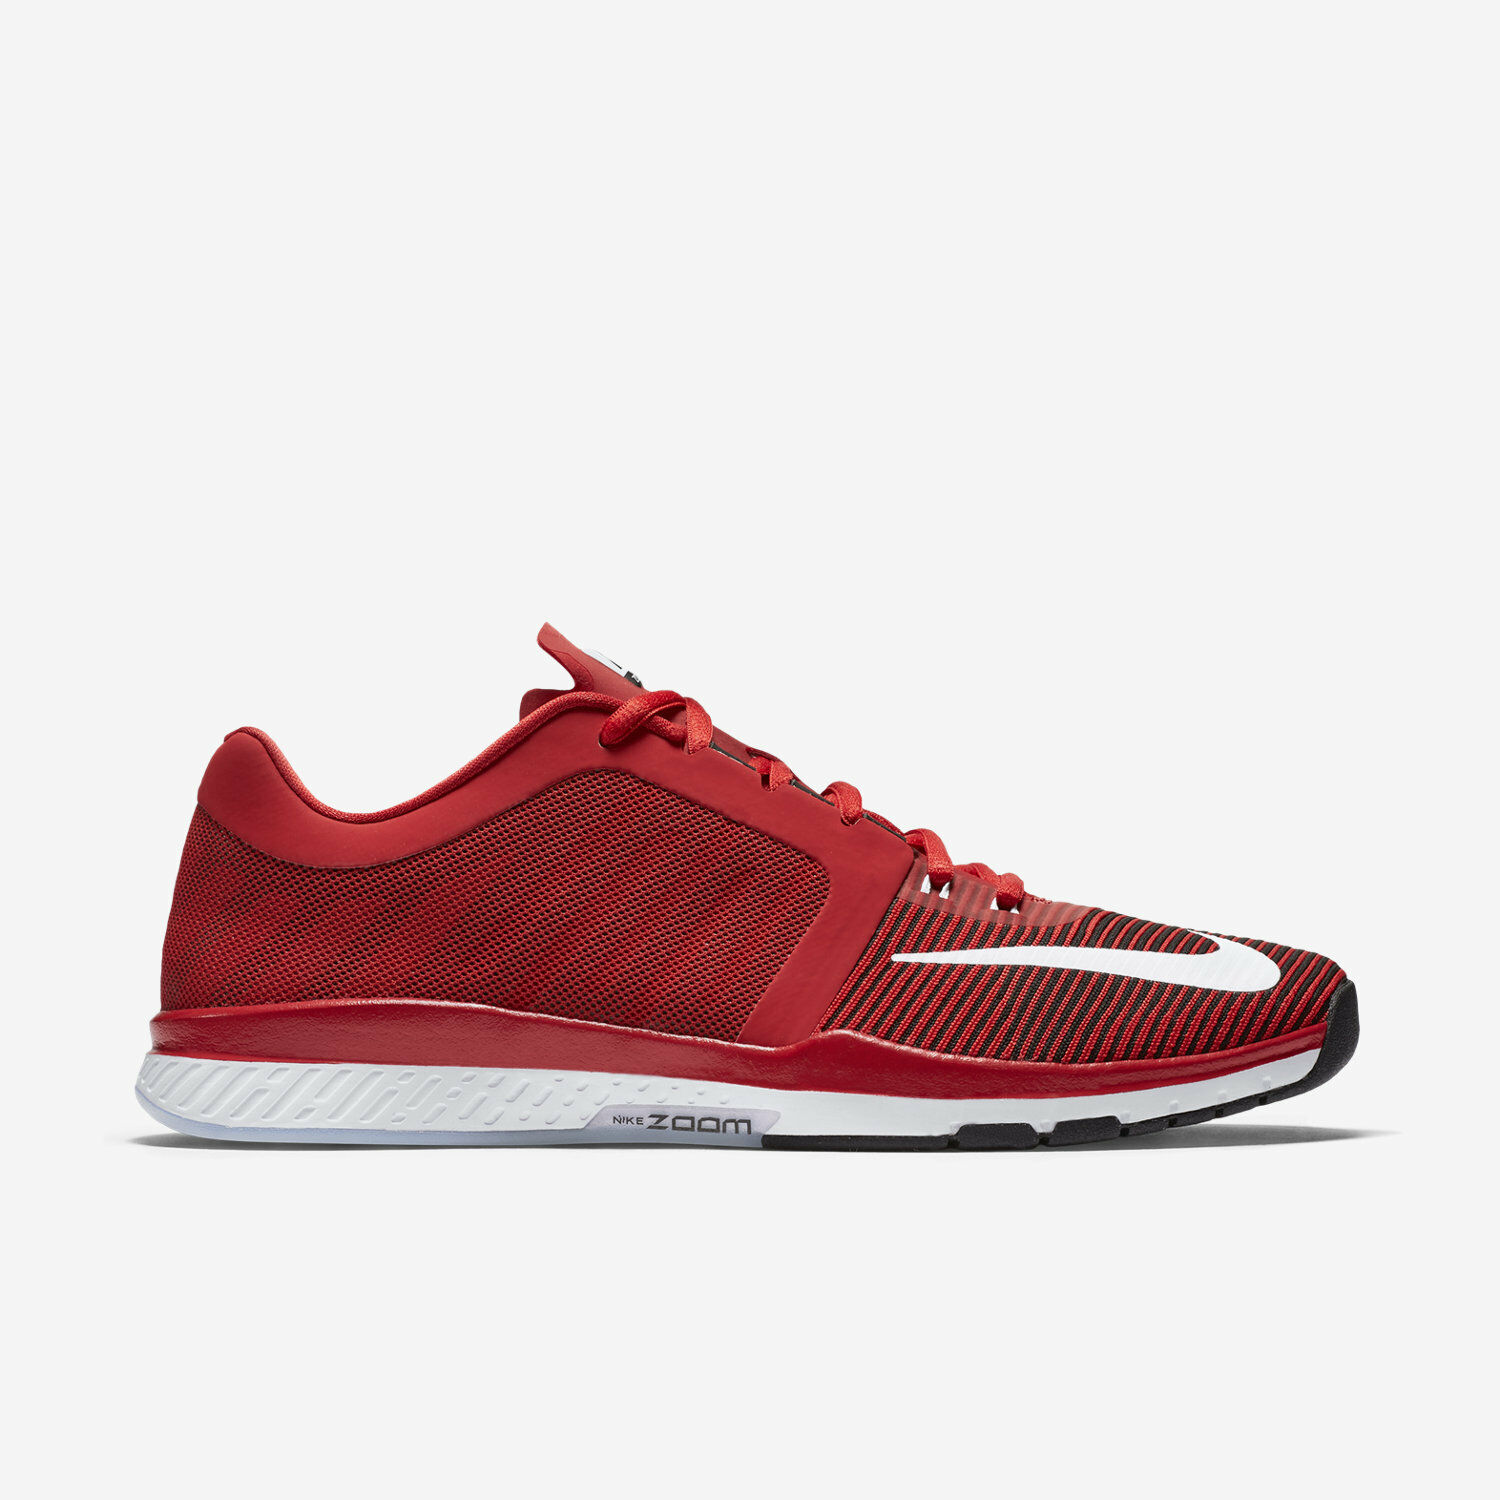 Men's Nike Zoom Zoom Zoom Speed TR3 Sz 7 University Red 804401-600 FREE SHIPPING 60589b